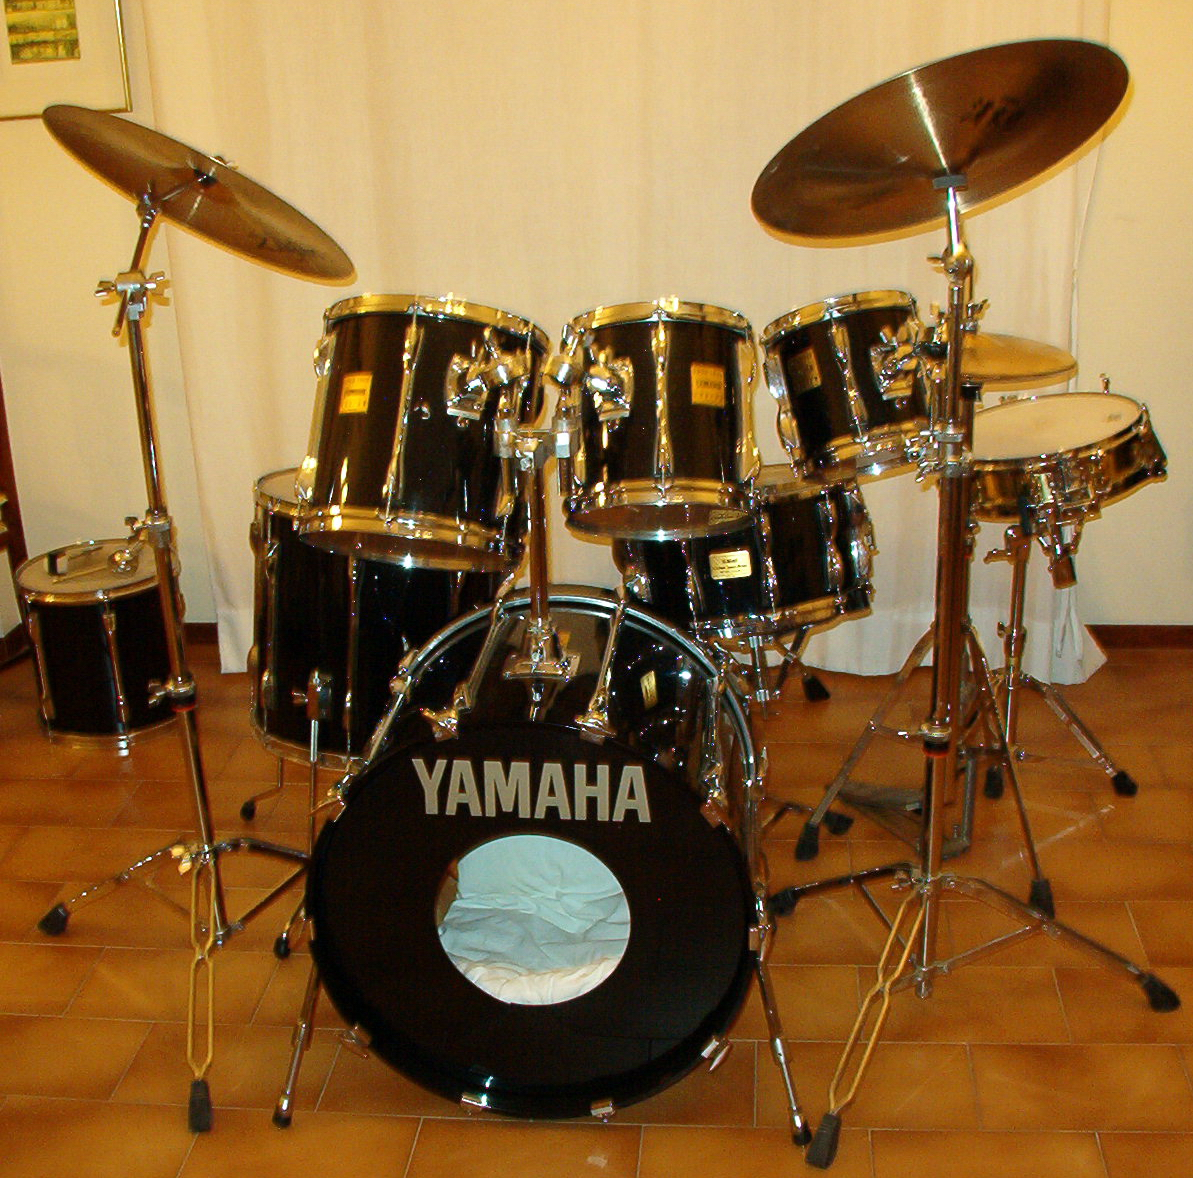 Yamaha Drum Badges For Sale